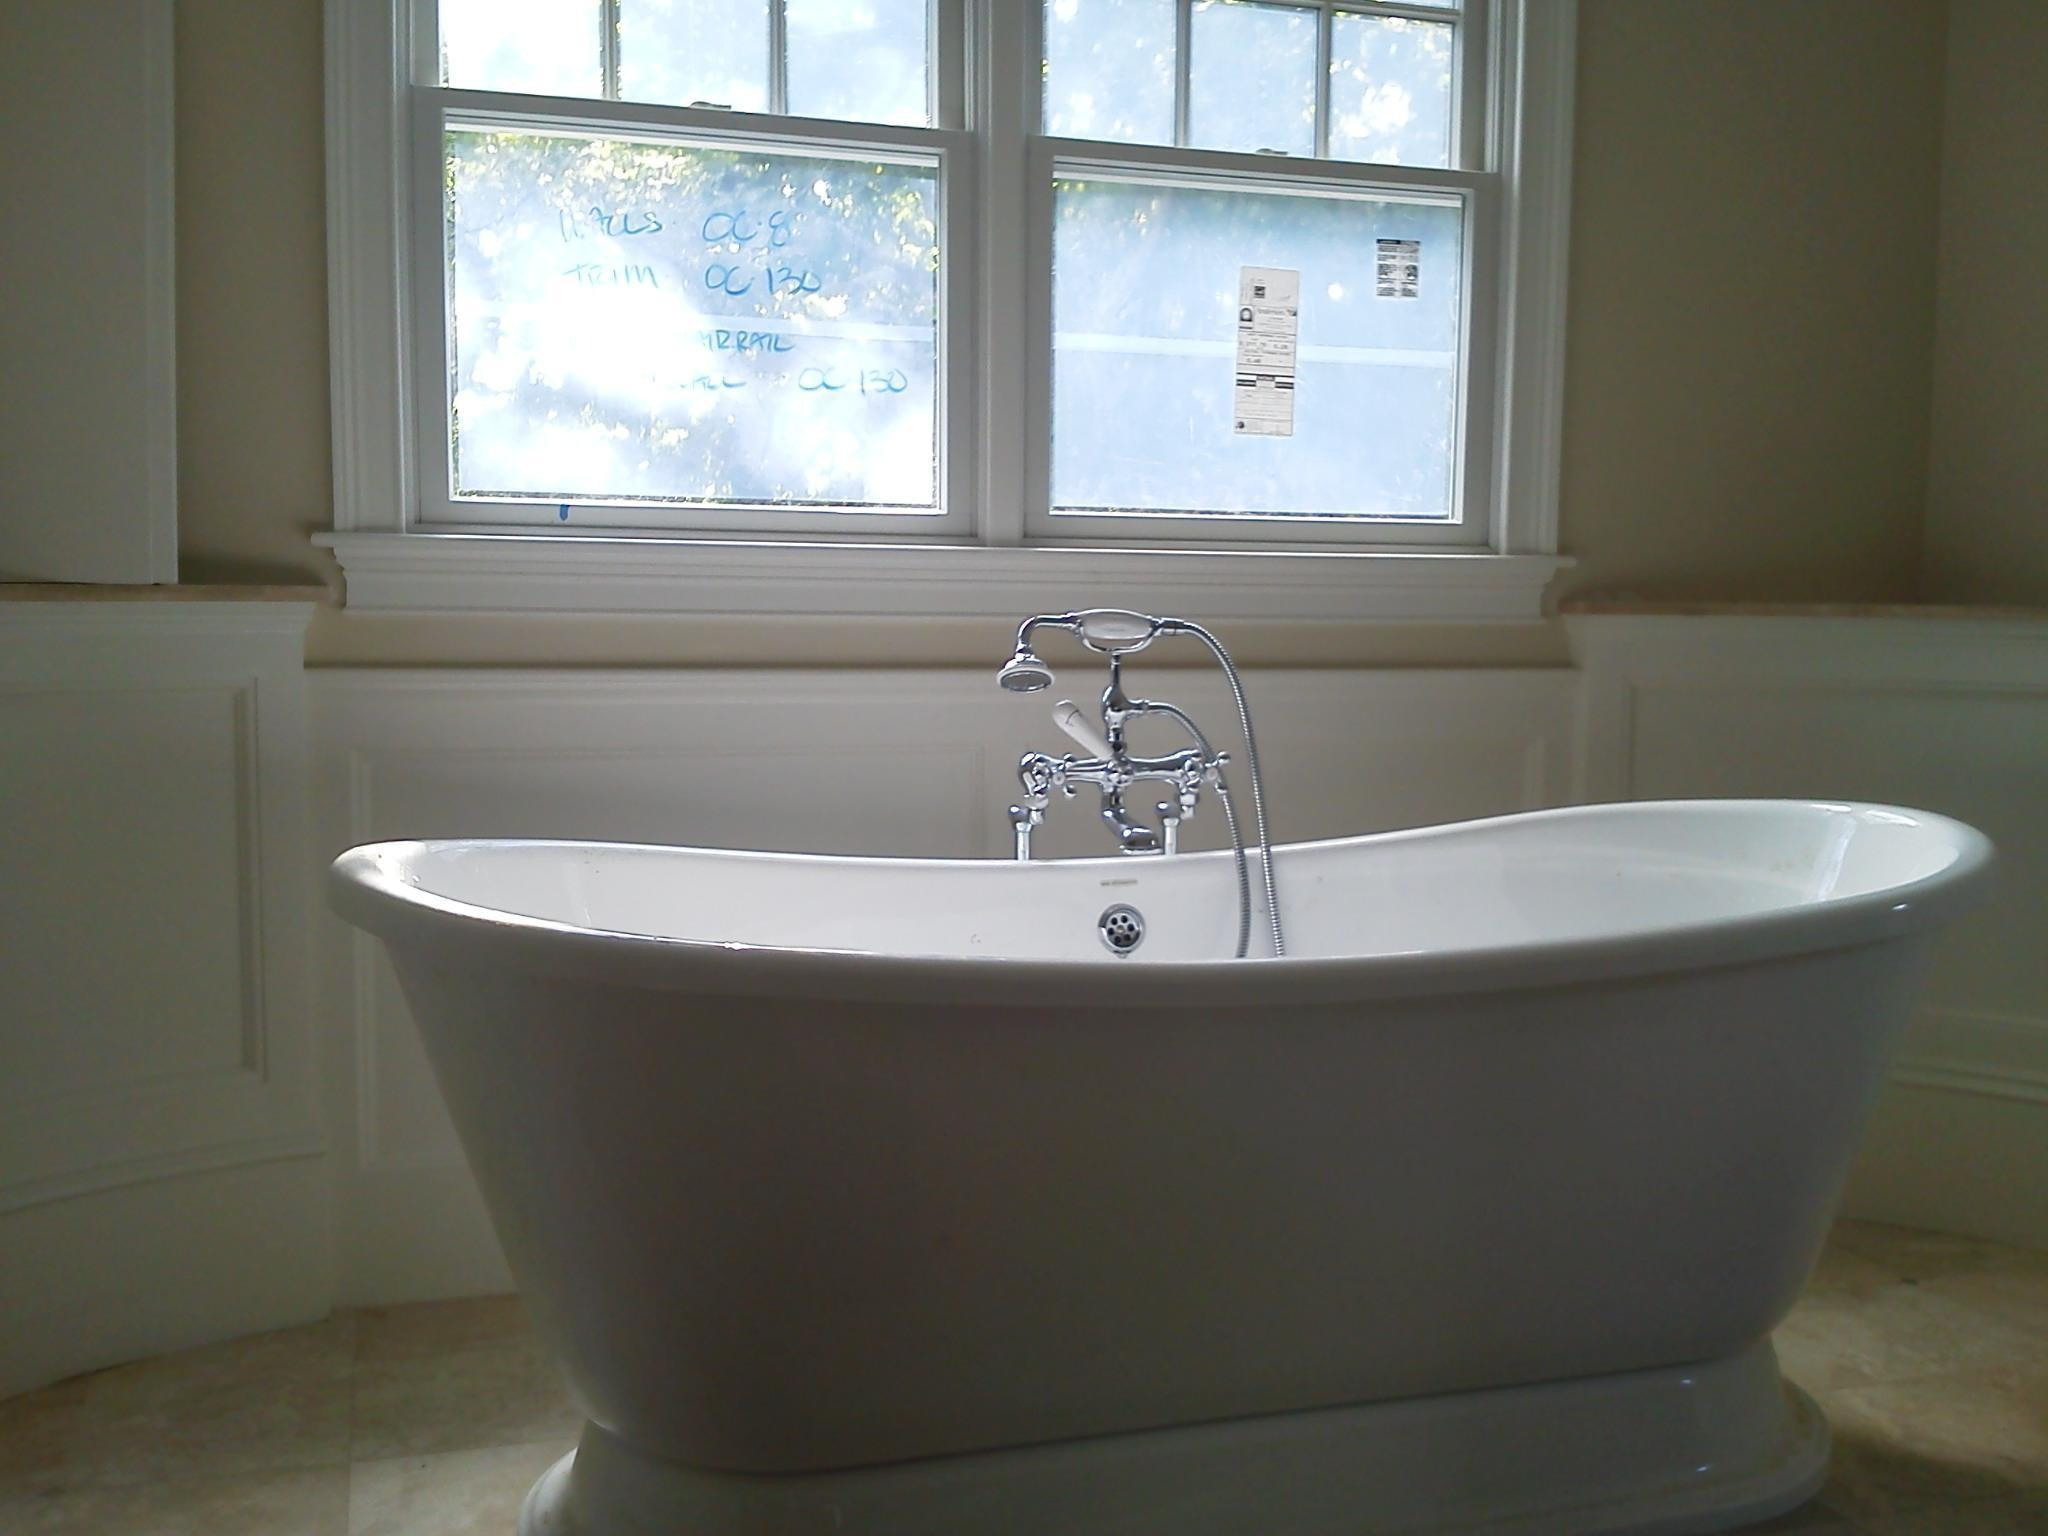 Enchanting Freestanding Bathtubs Designs Ideas That Will Leave You Without Words Beautiful Decoratorist